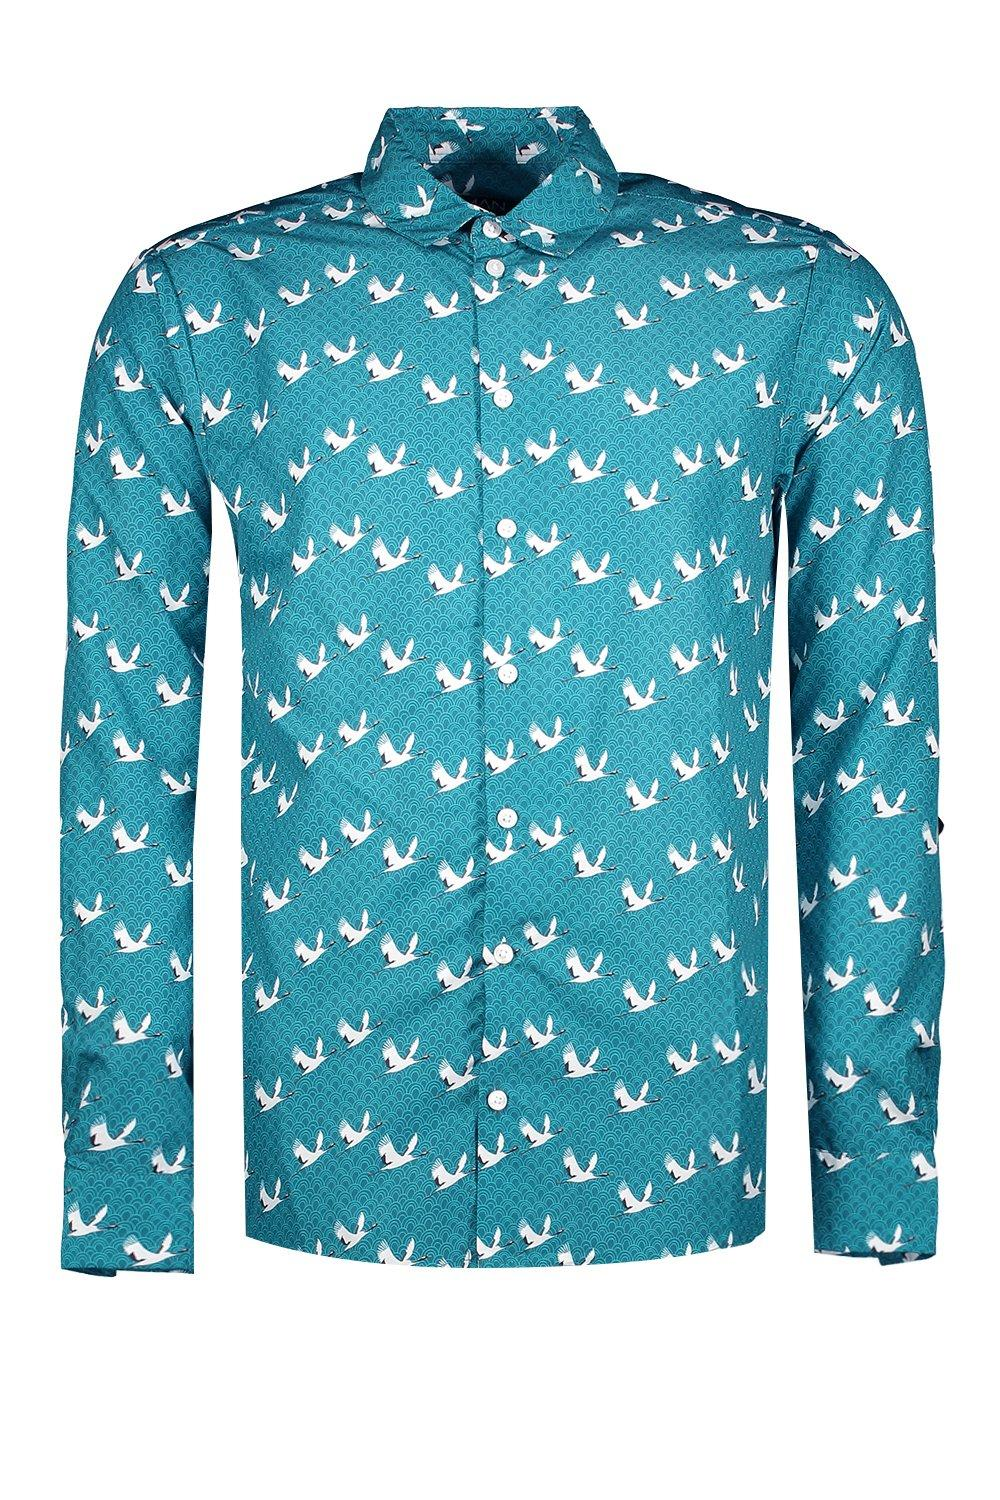 boohooMAN teal Bird Print Long Sleeve Satin Shirt